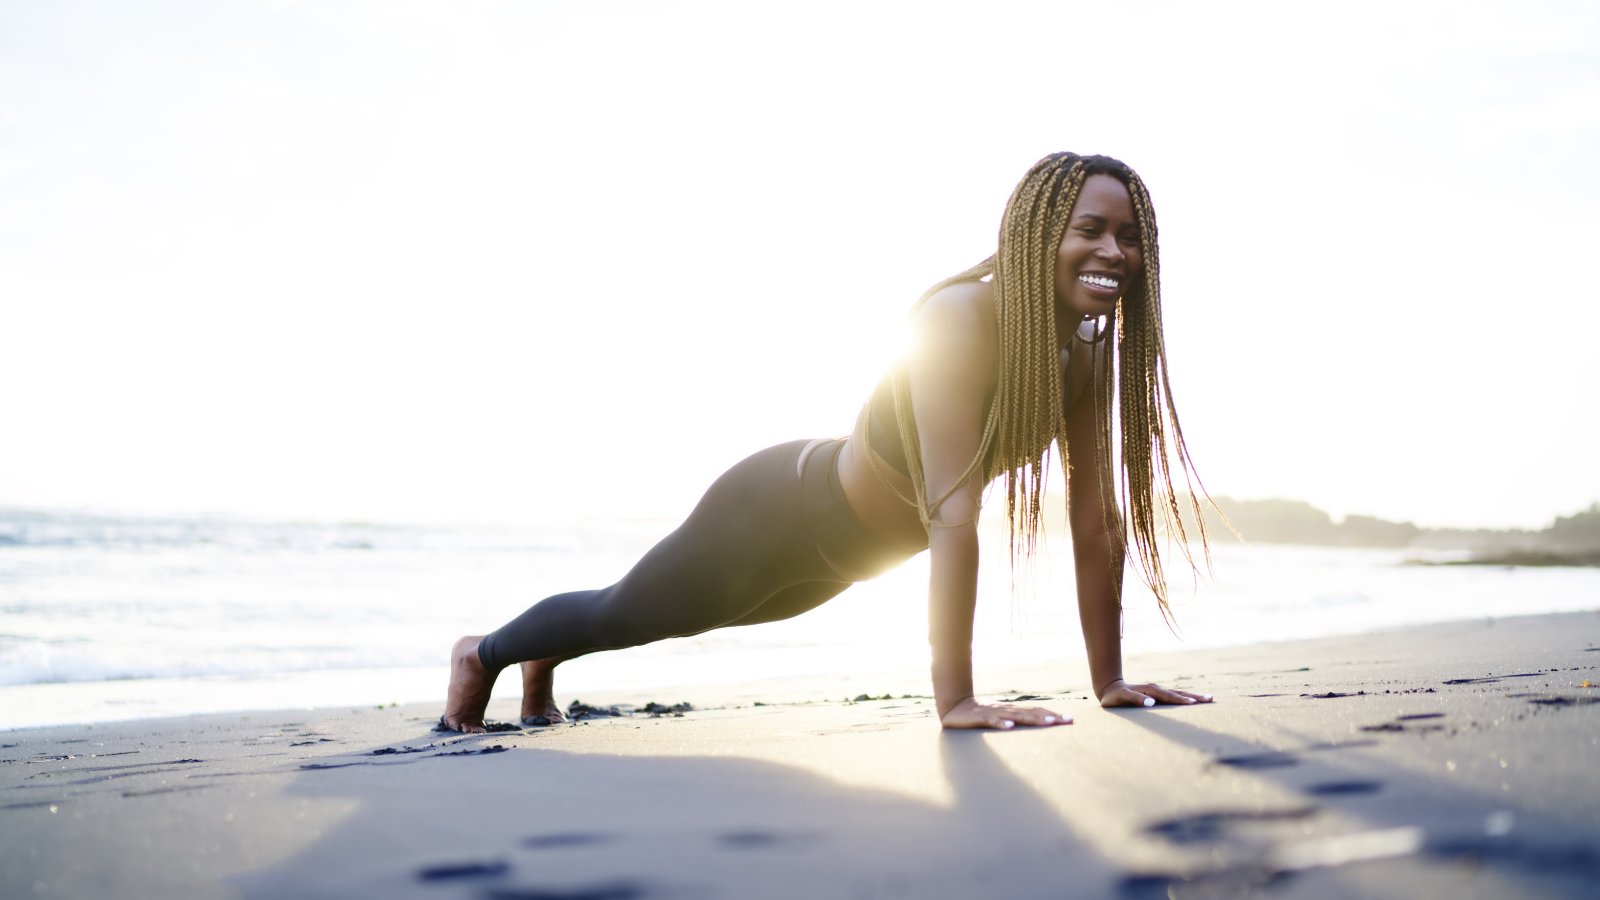 Beginner tips to practice yoga to heal from and gain knowledge of difficult topics like racism and prejudice